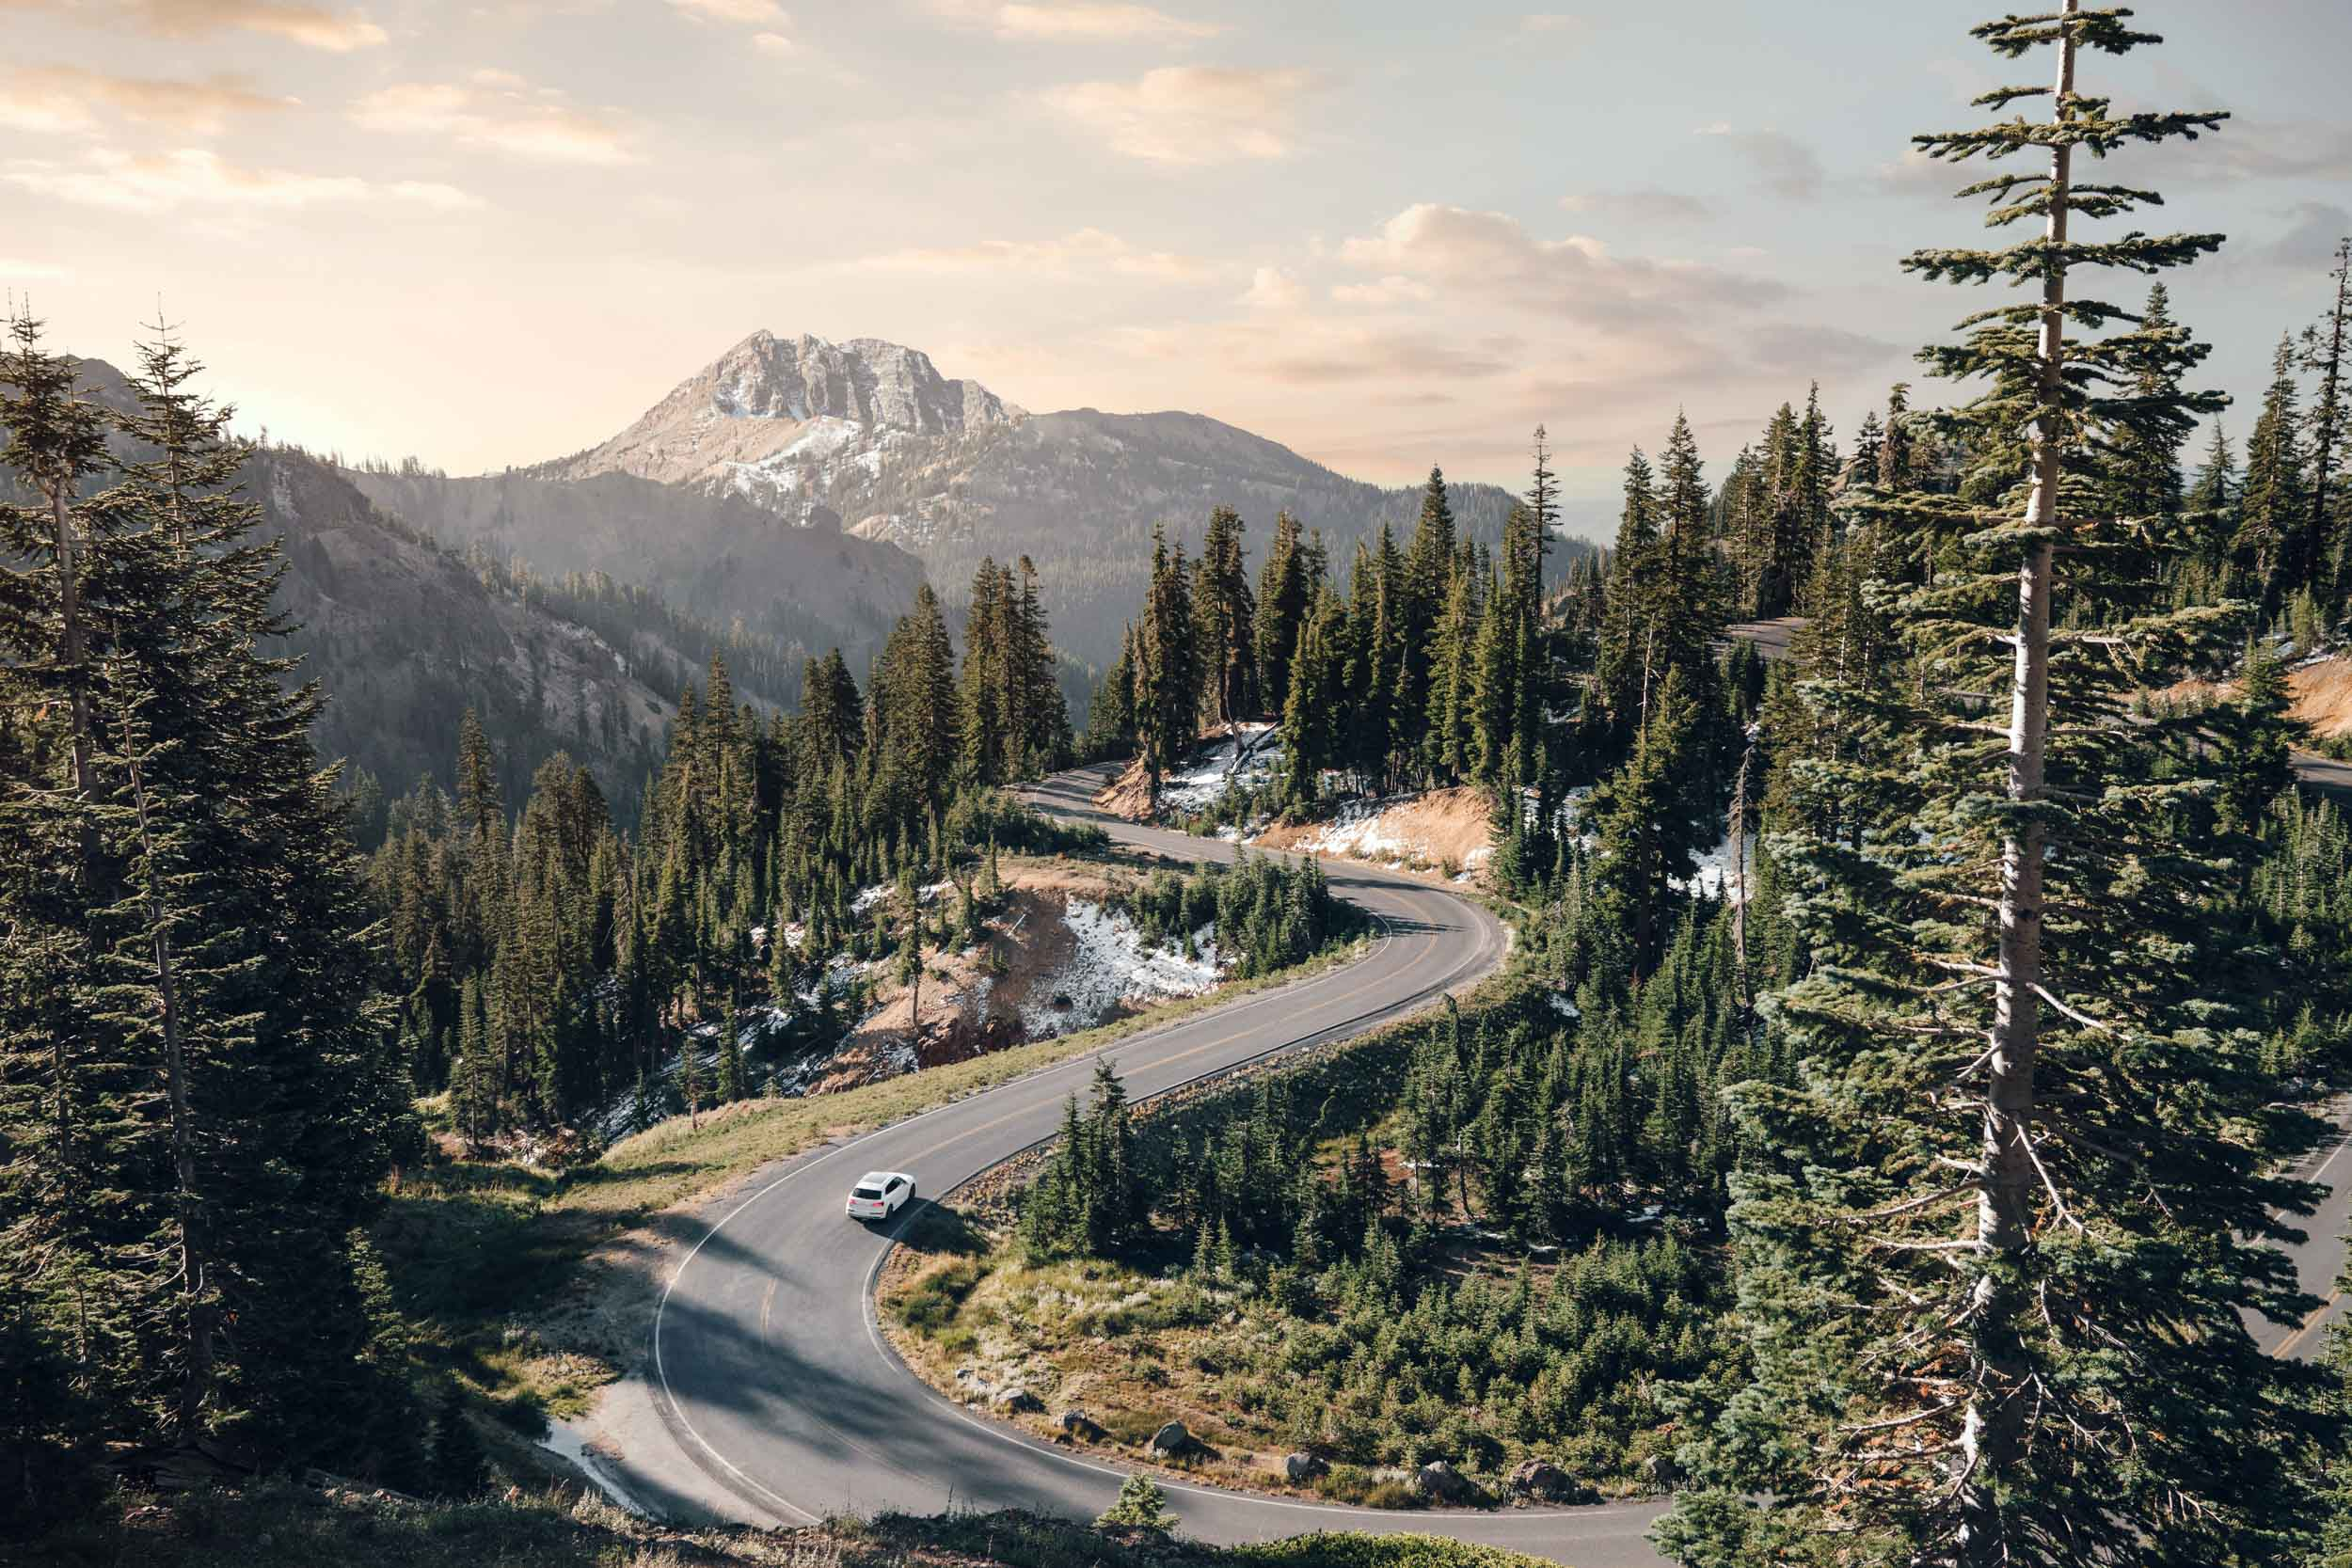 White Audi Q7 drives down a curvy road with Mount Lassen in the background